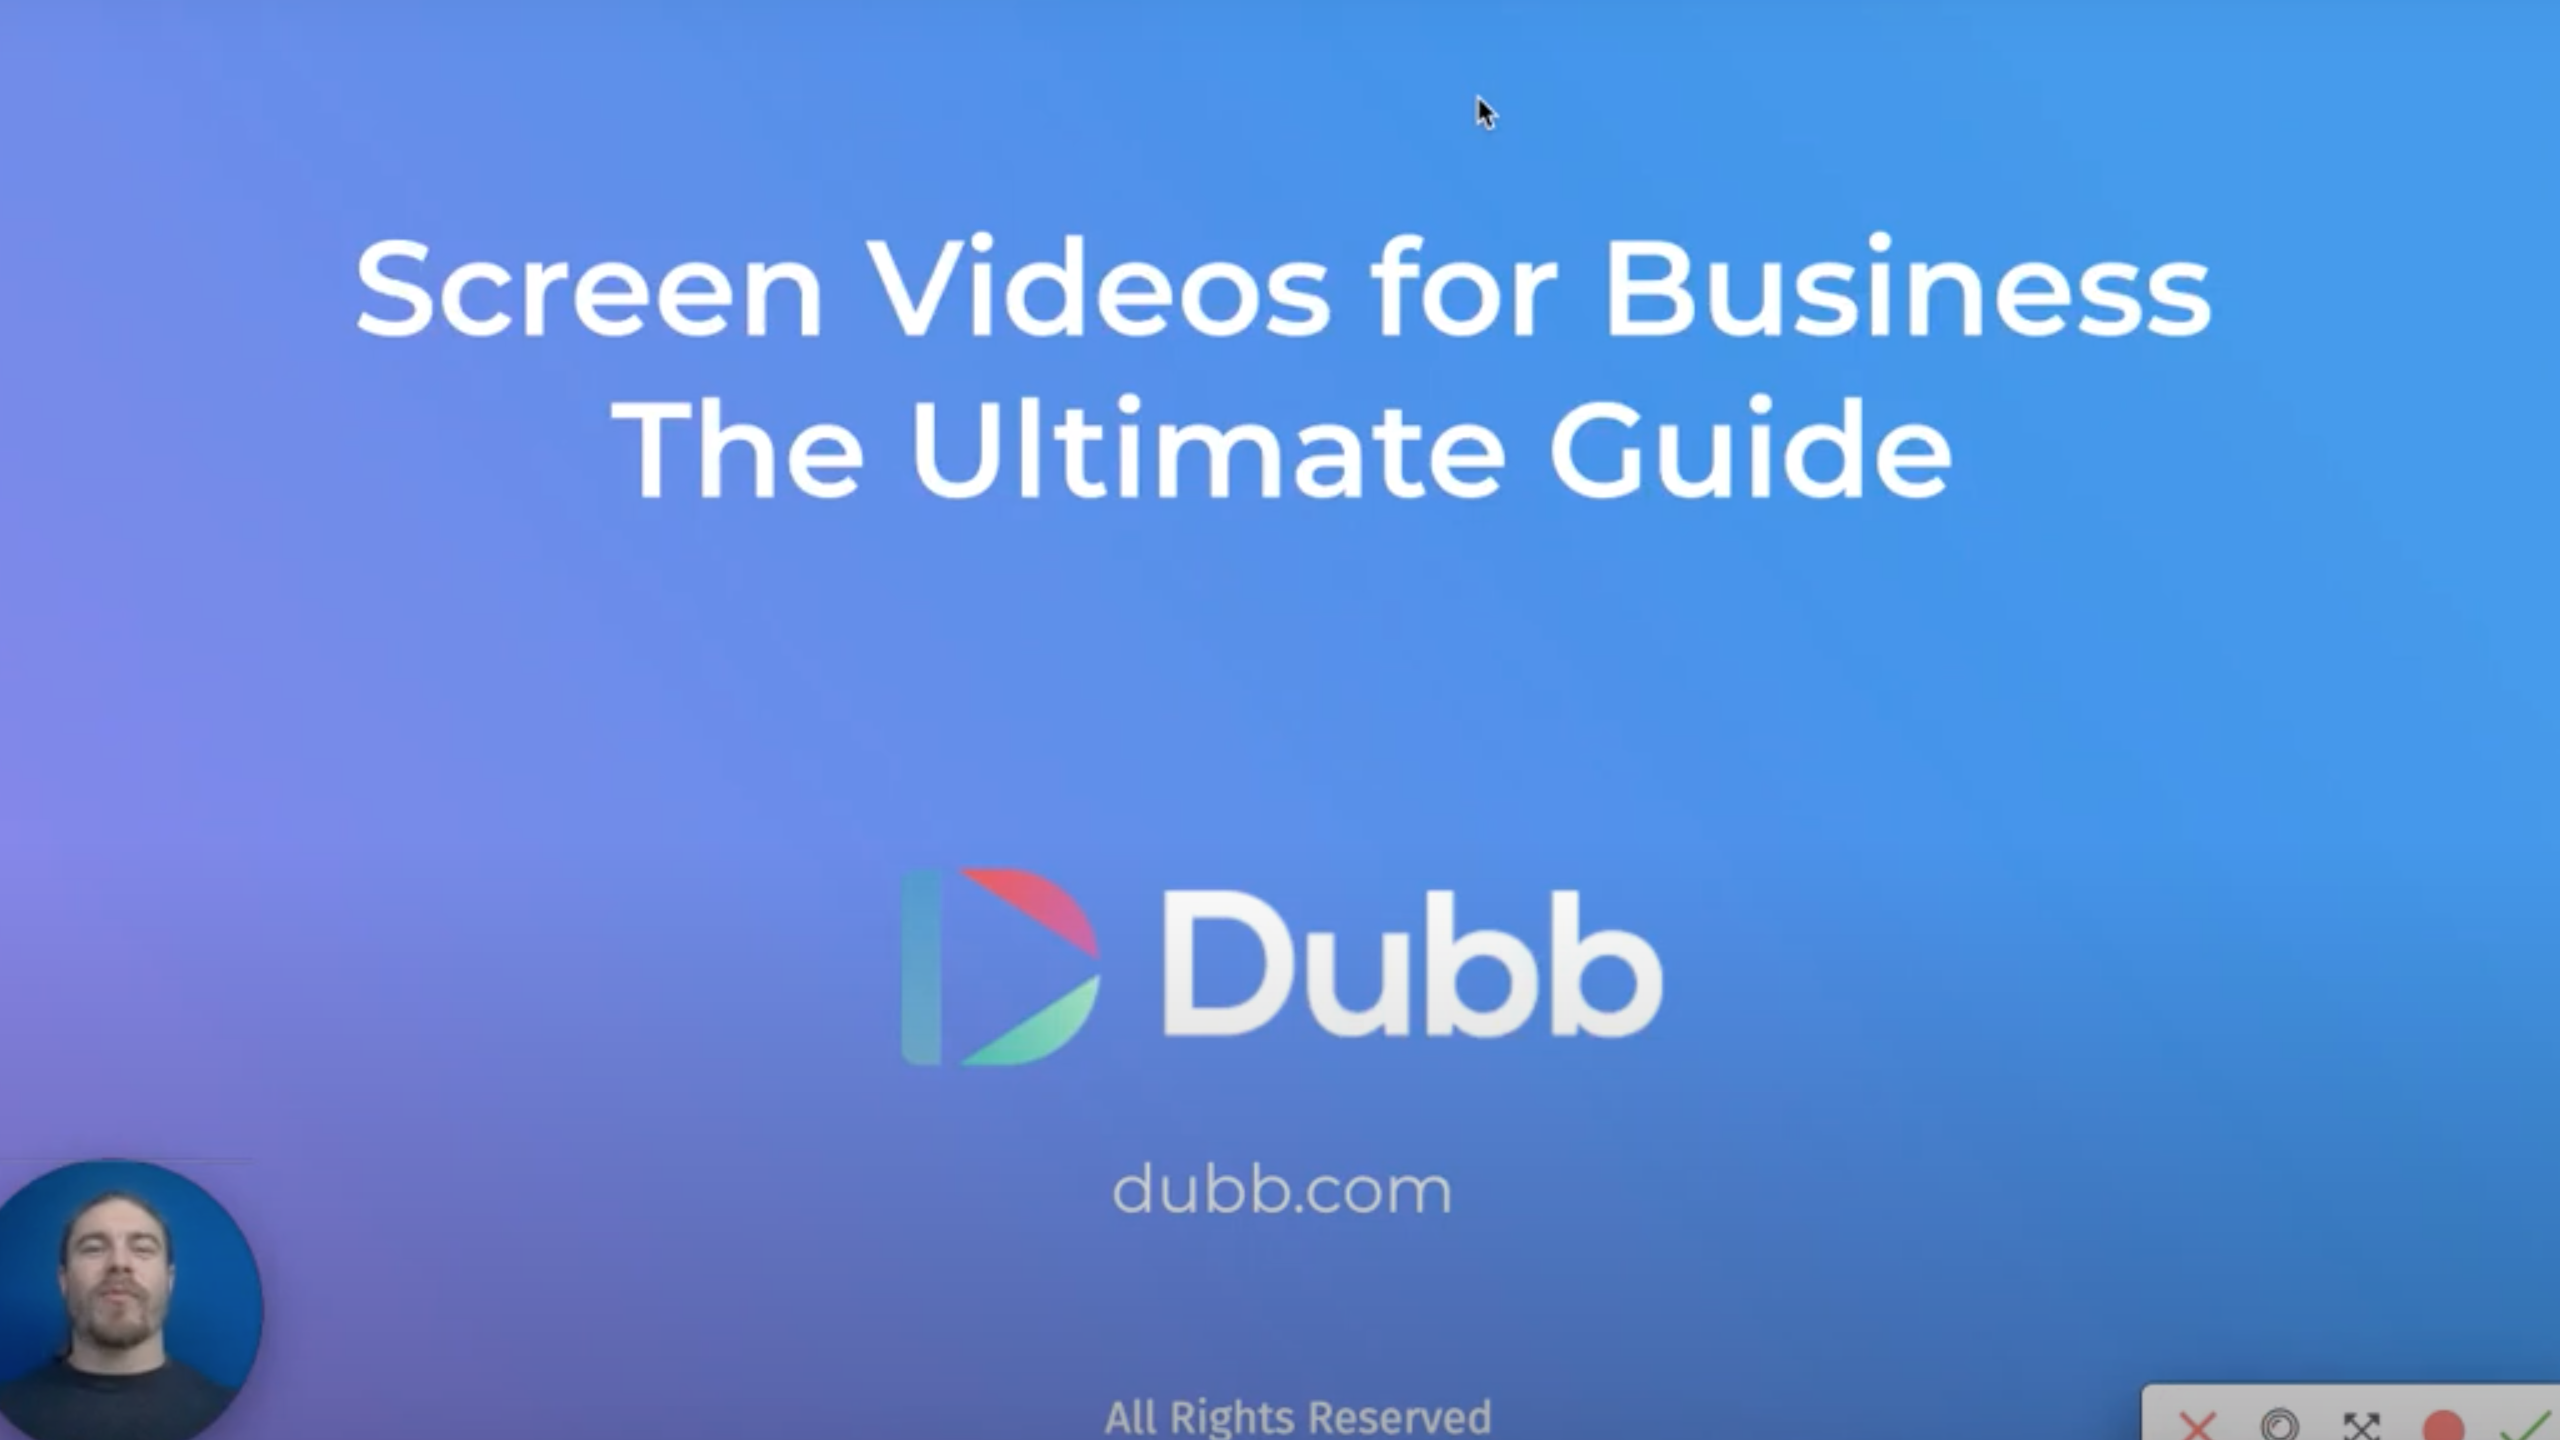 Screen videos for Business